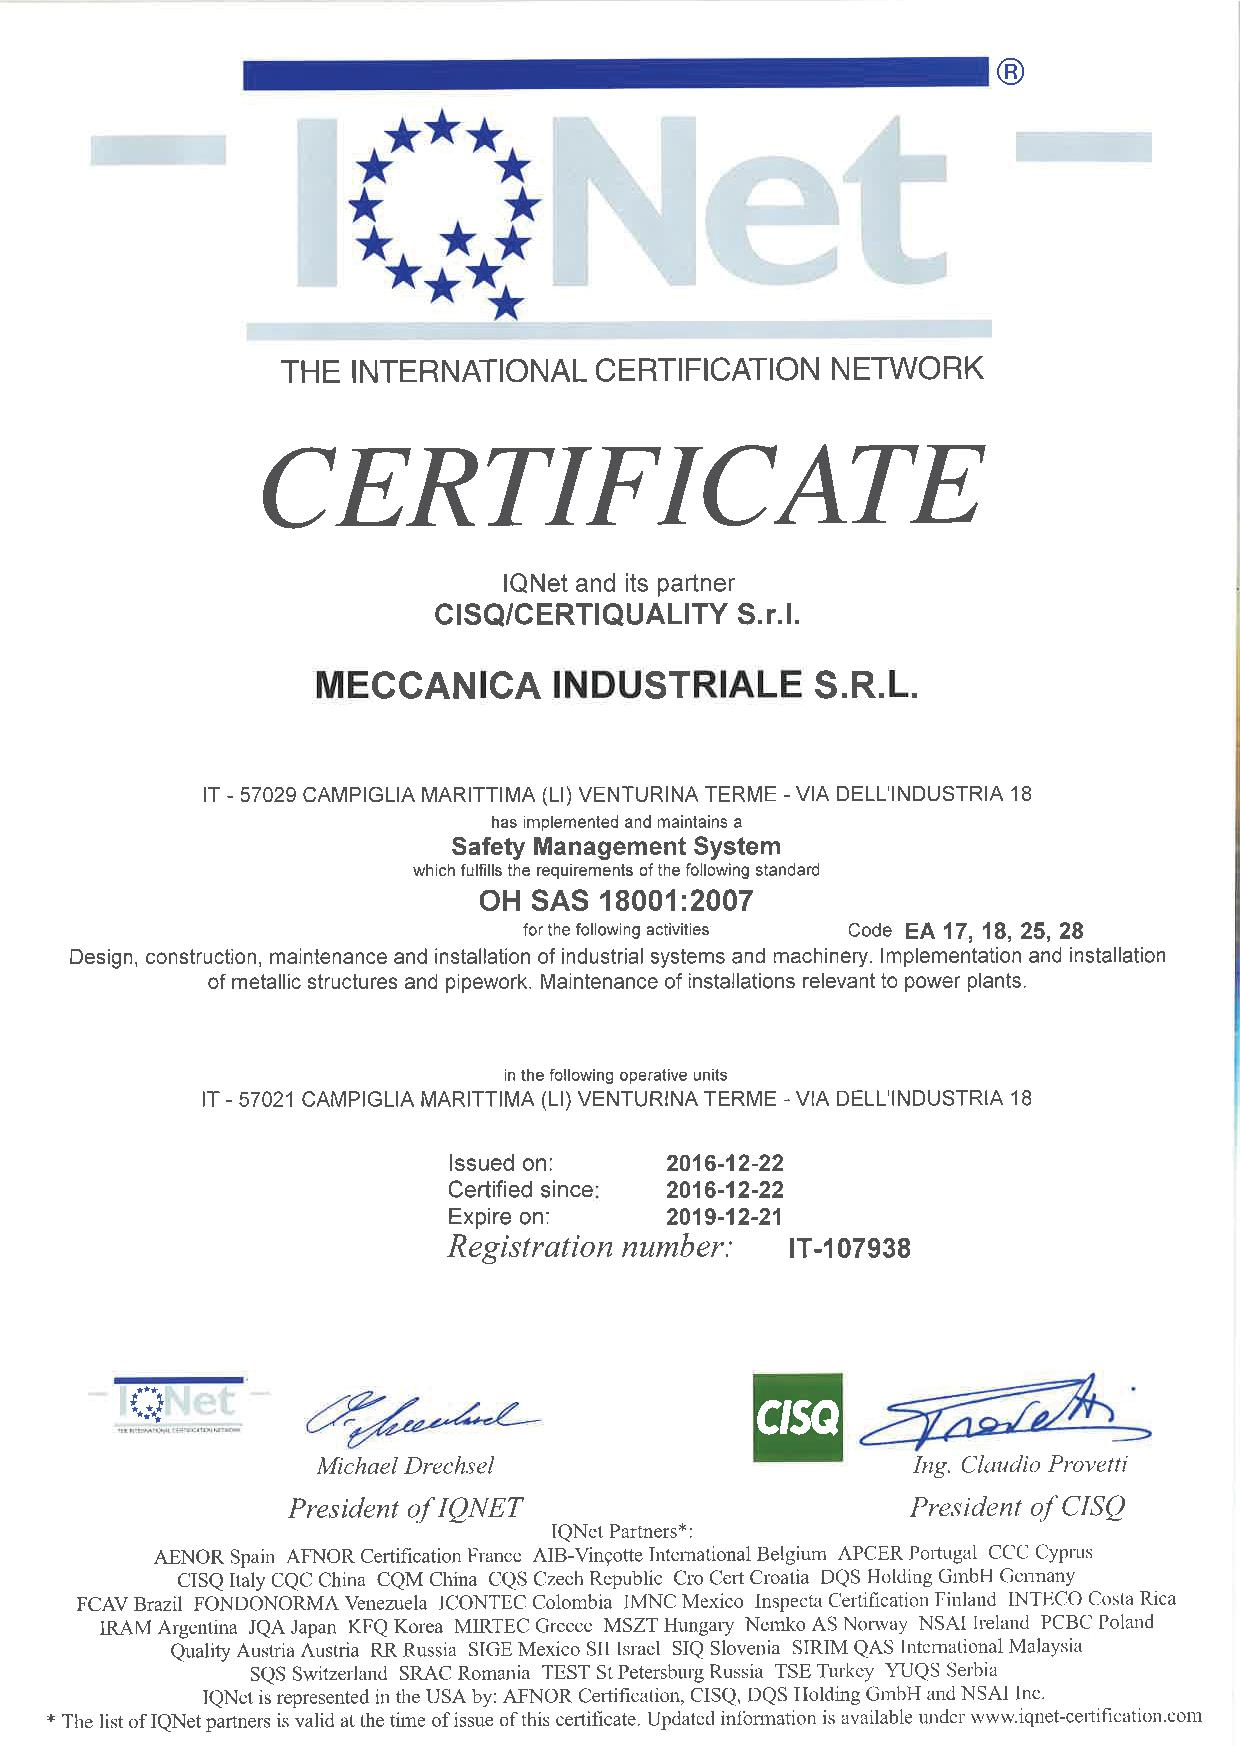 Quality System Certifications Meccanica Indistriale Srl